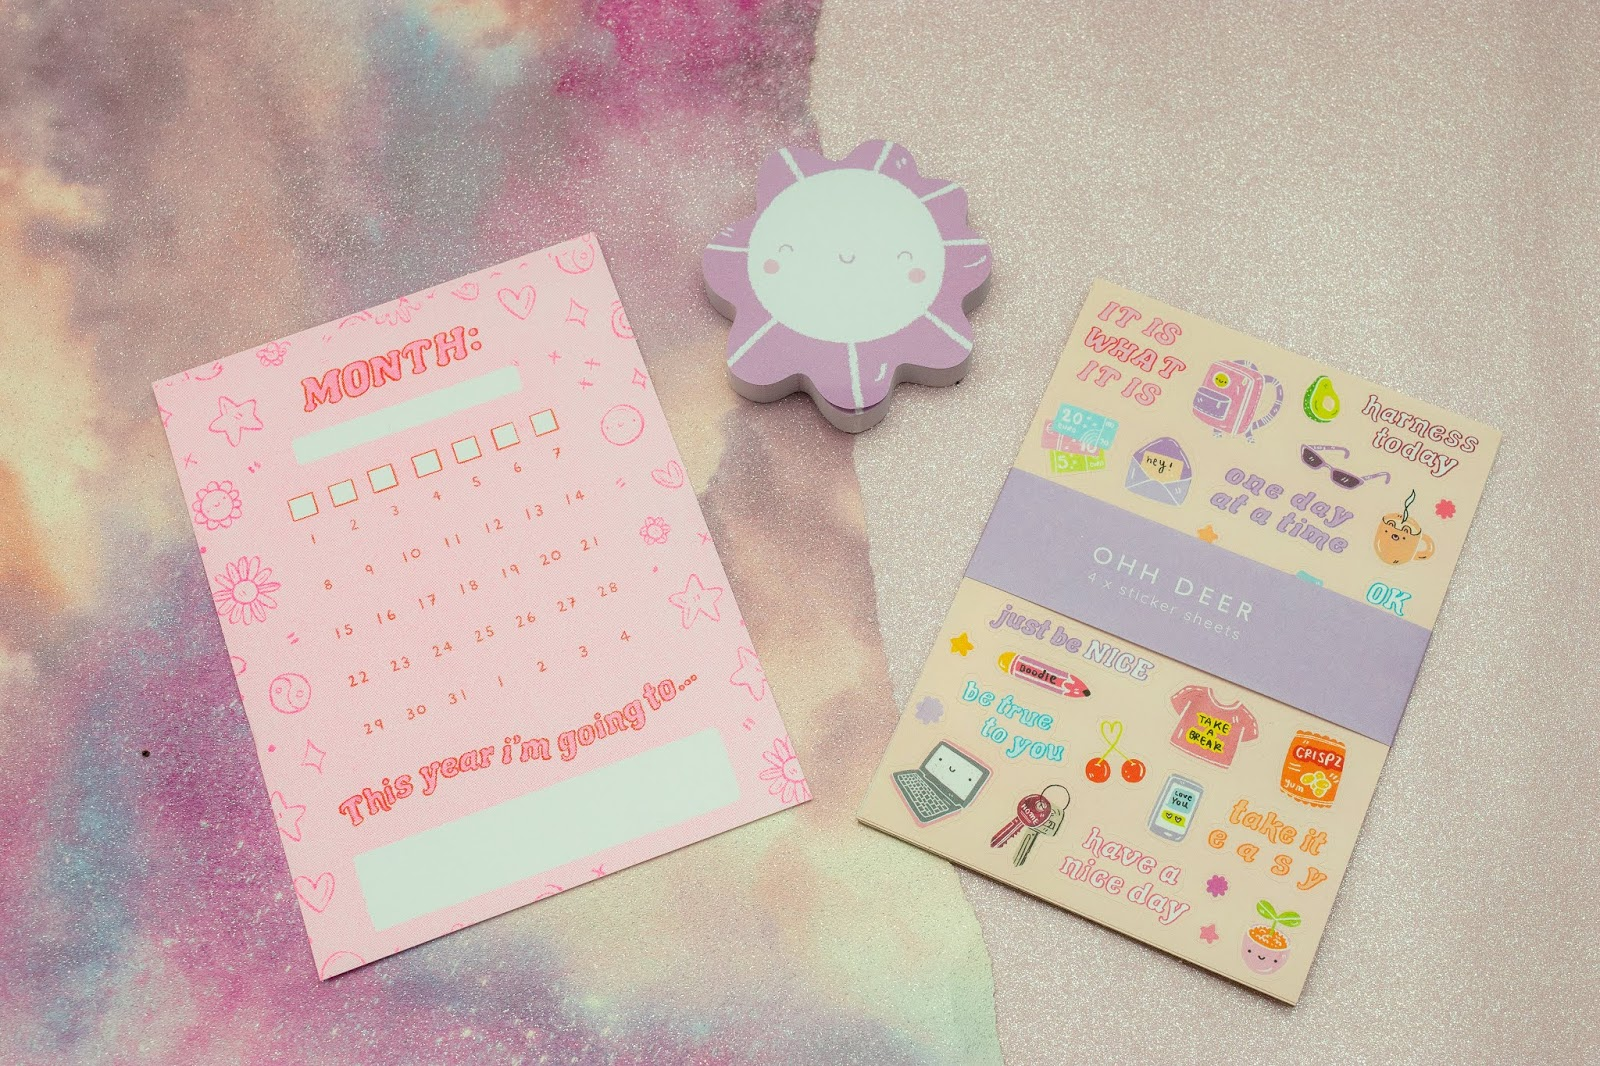 A flat lay of the postcard with a calendar on, purple flower post it notes and a pack of doodle design stickers.